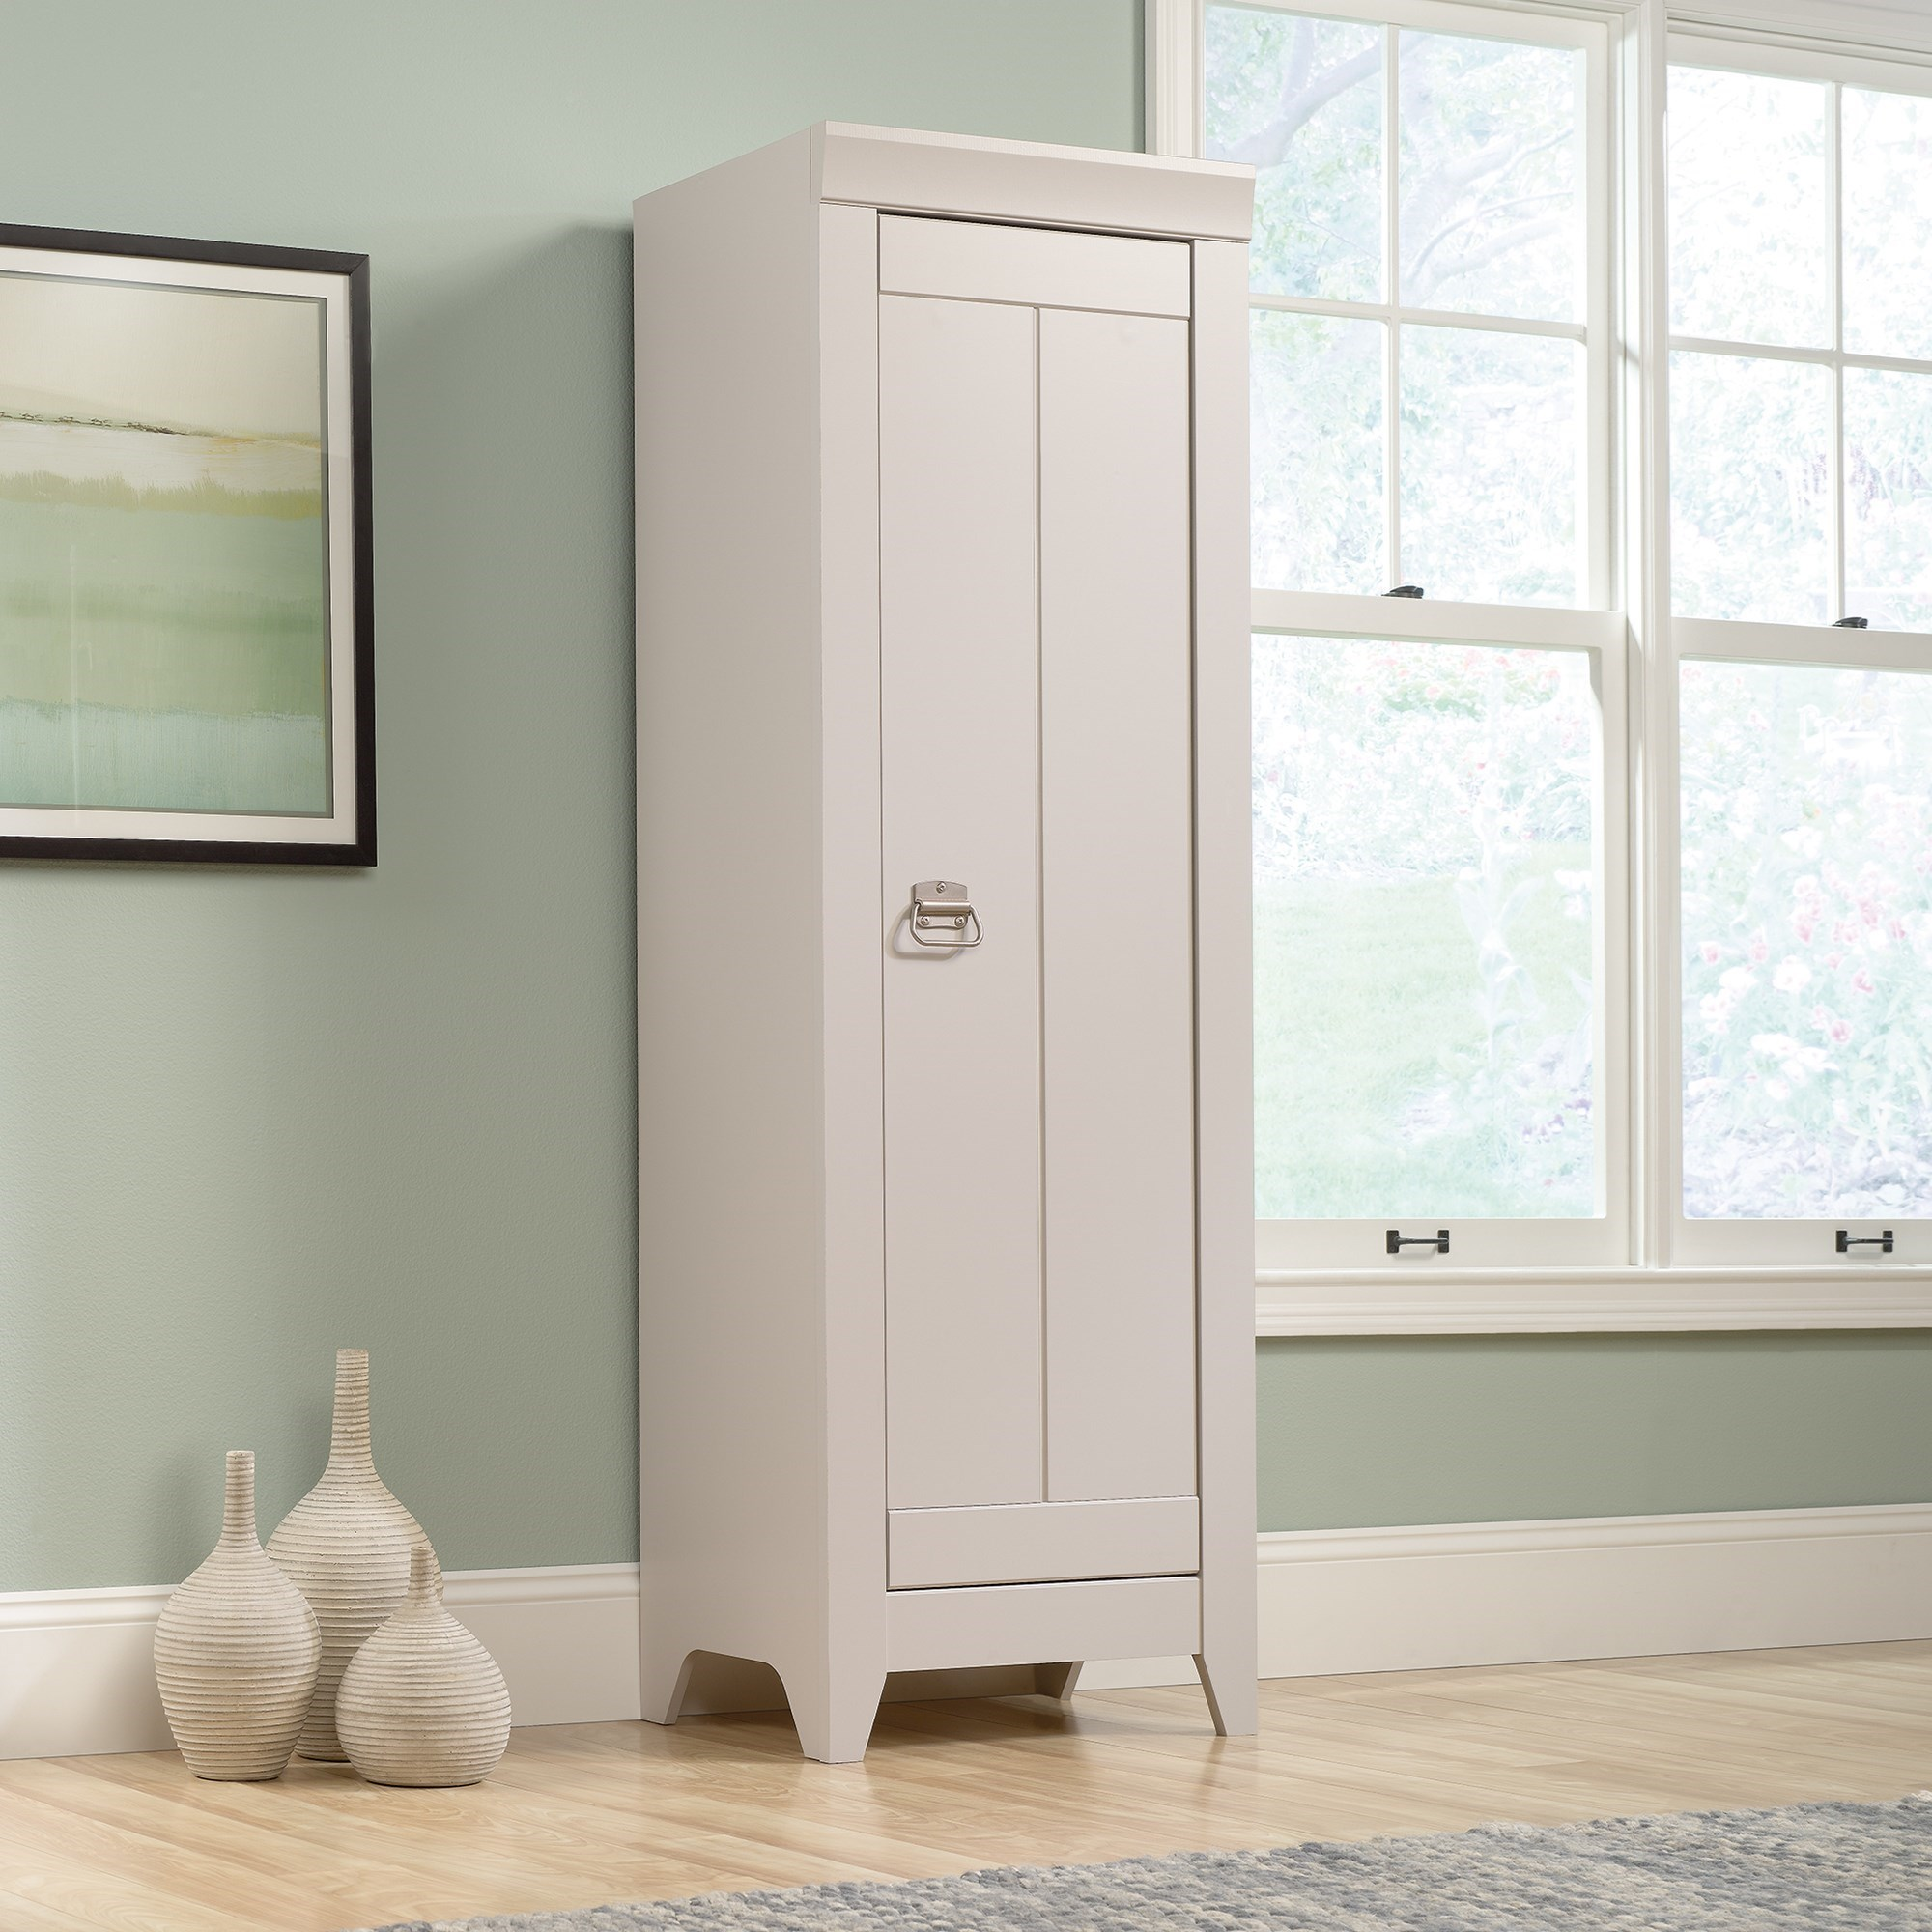 Adept Storage Narrow Storage Cabinet by Sauder at Catalog Outlet